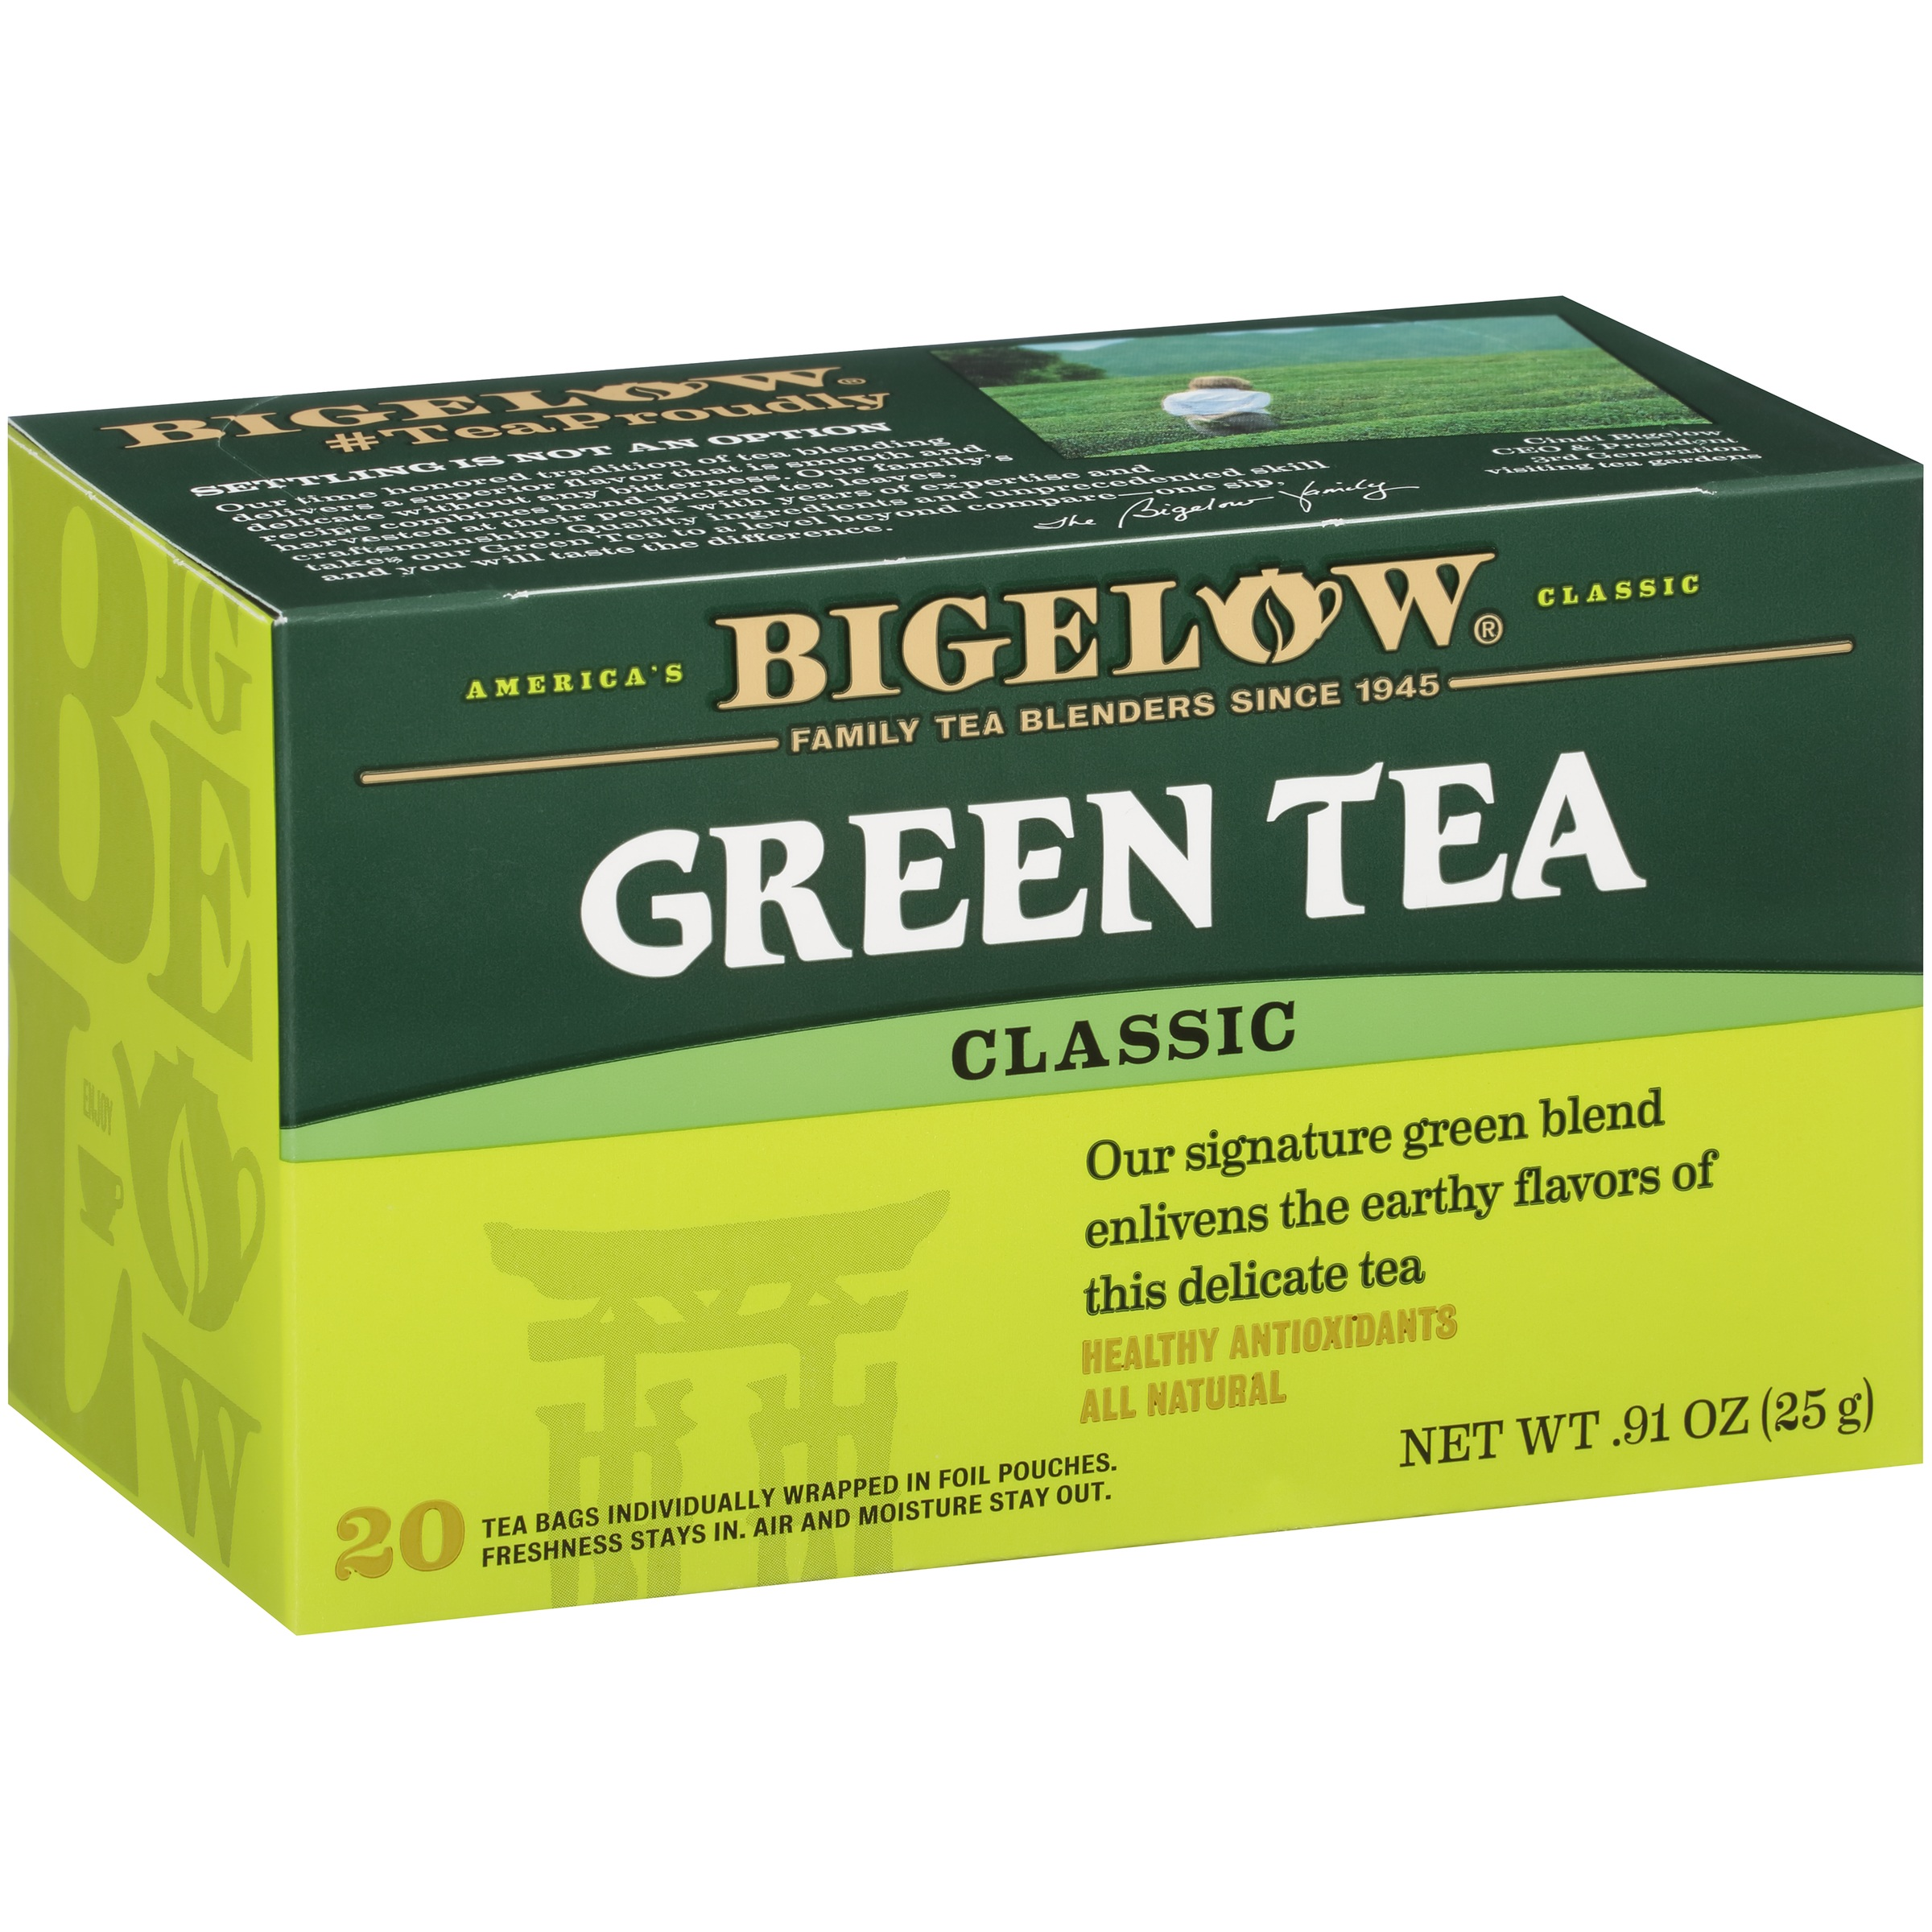 Bigelow® Classic Green Tea Bags 20 ct Box